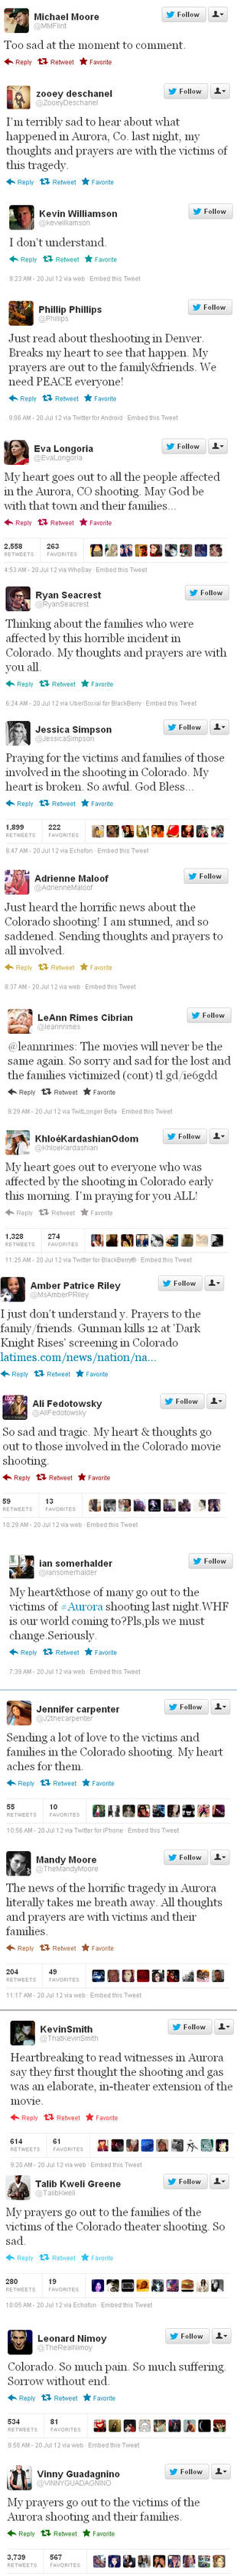 Aurora, Colorado, Dark Knight Rises Shooting: Celebrities Tweet Their Shock and Sadness